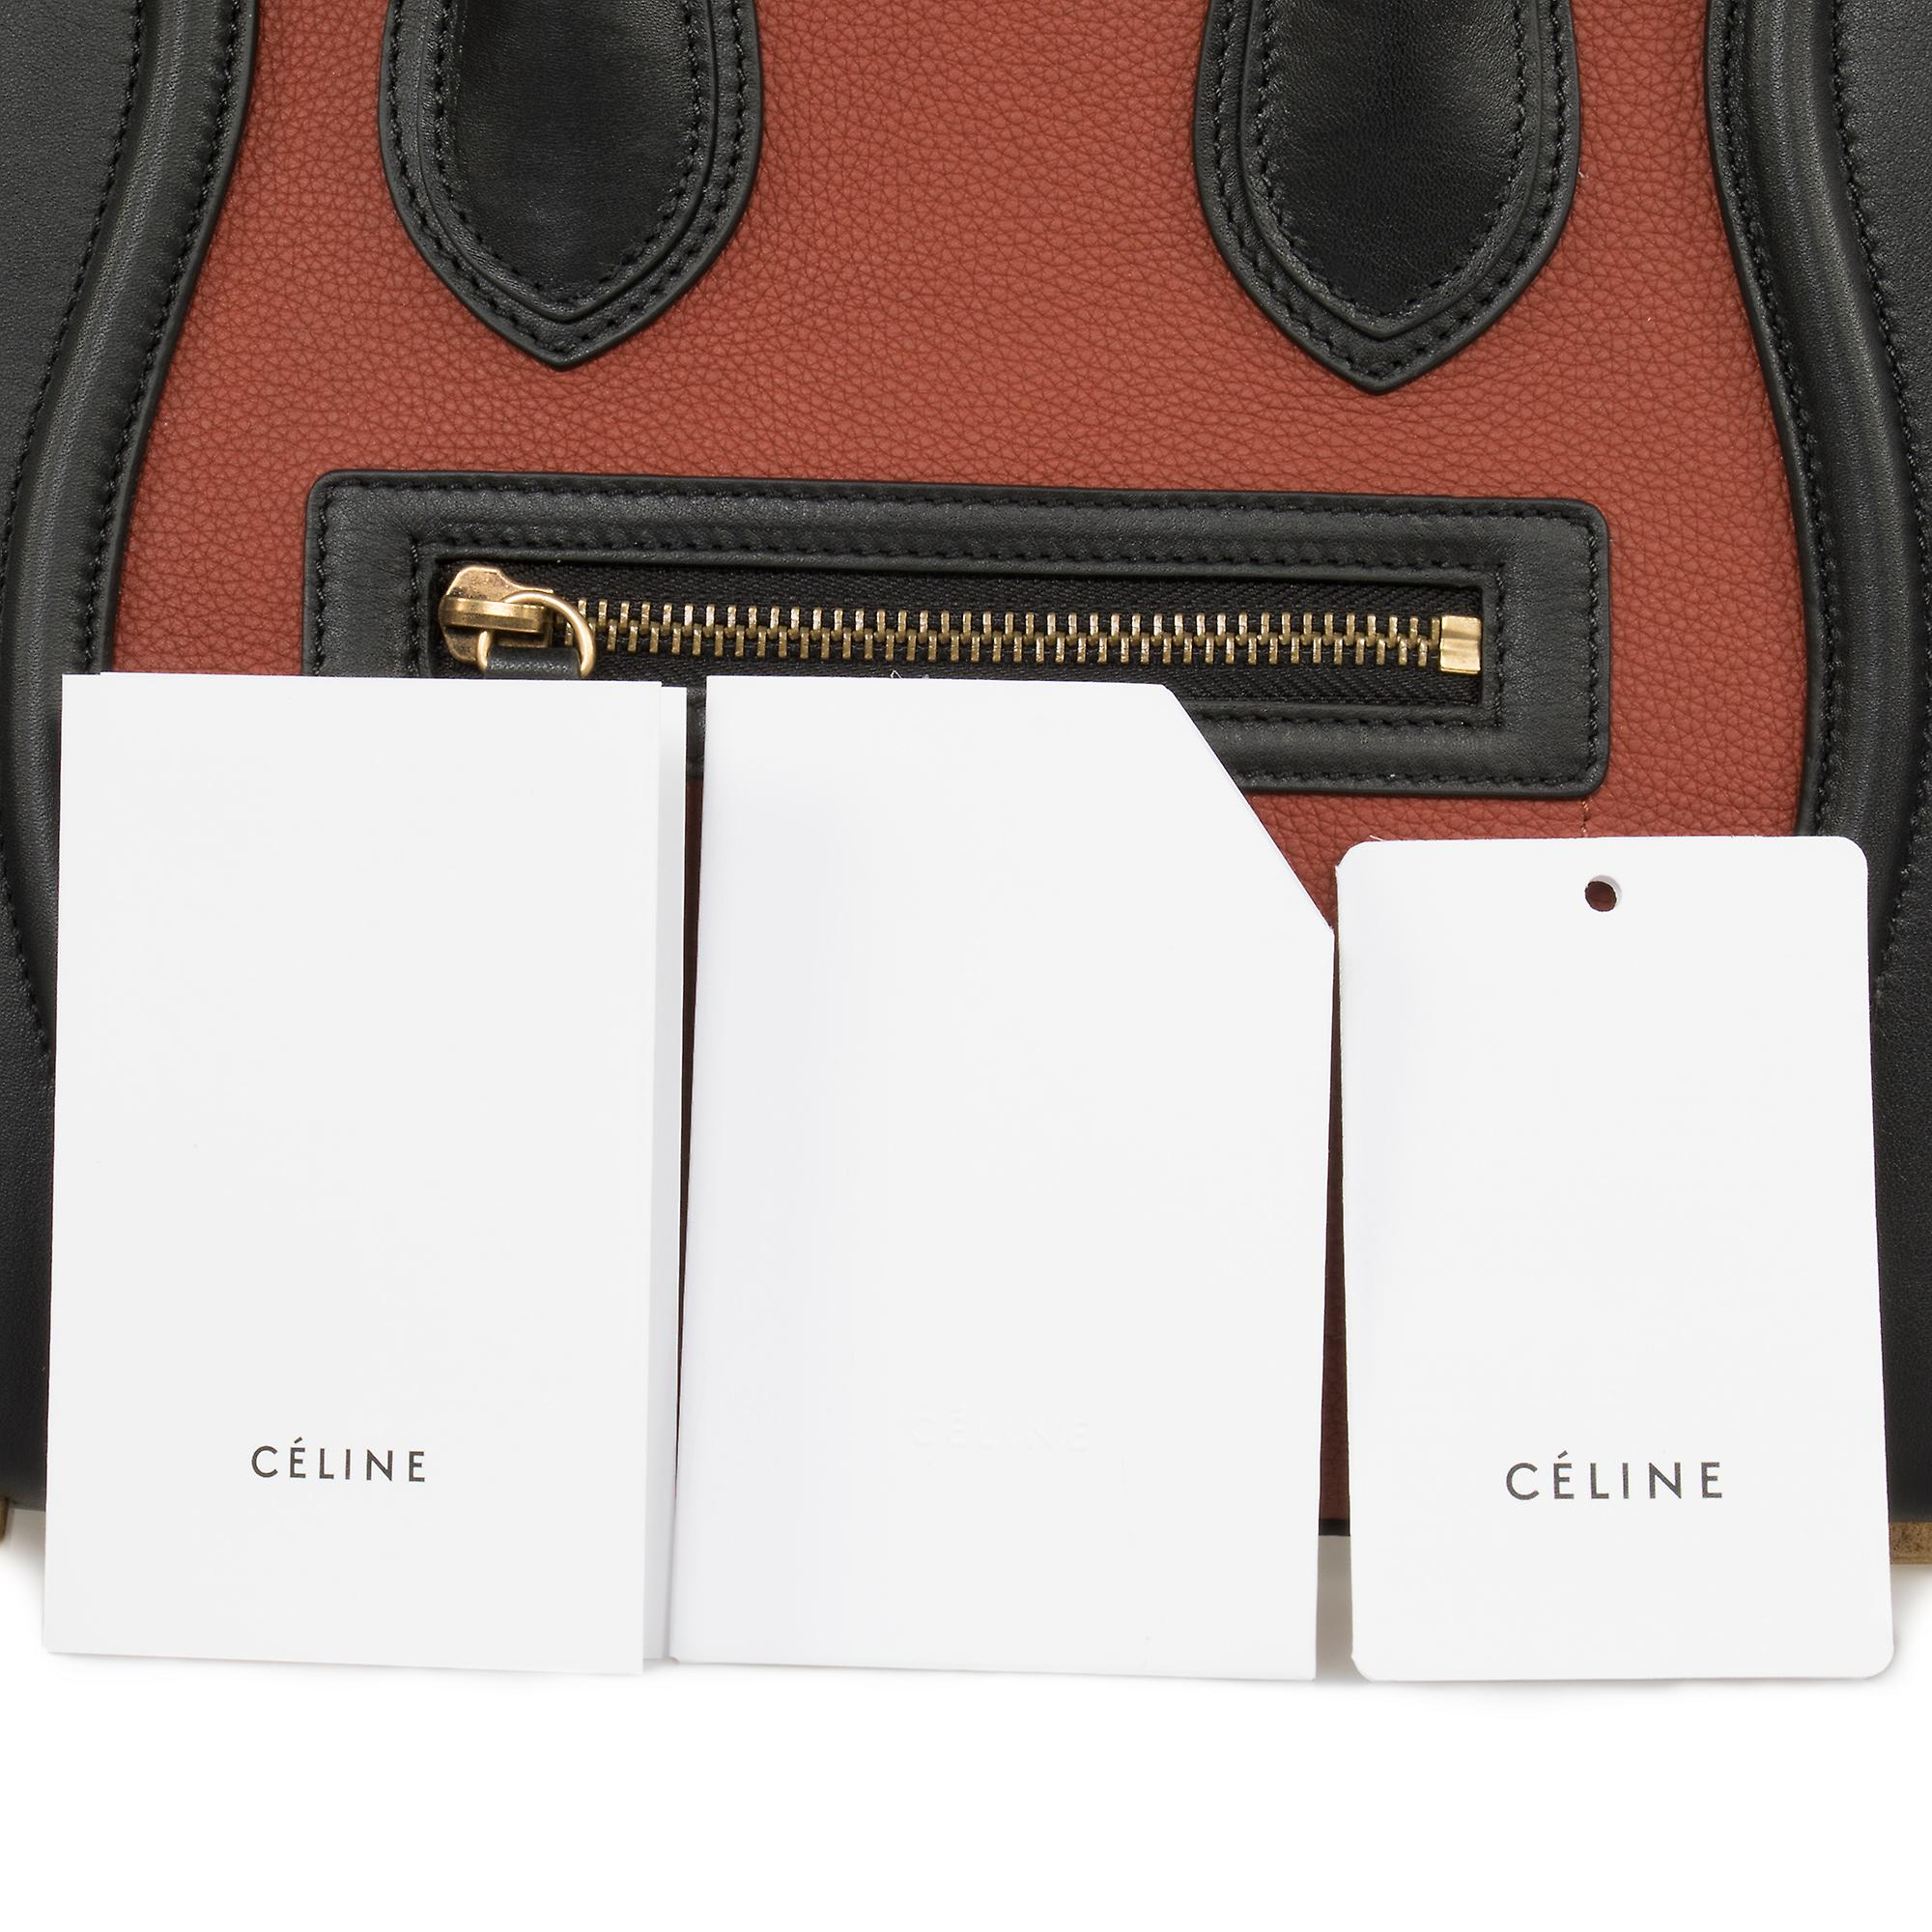 Celine Micro Luggage Leather Bag | Tri-Color Black w/ Gold Hardware